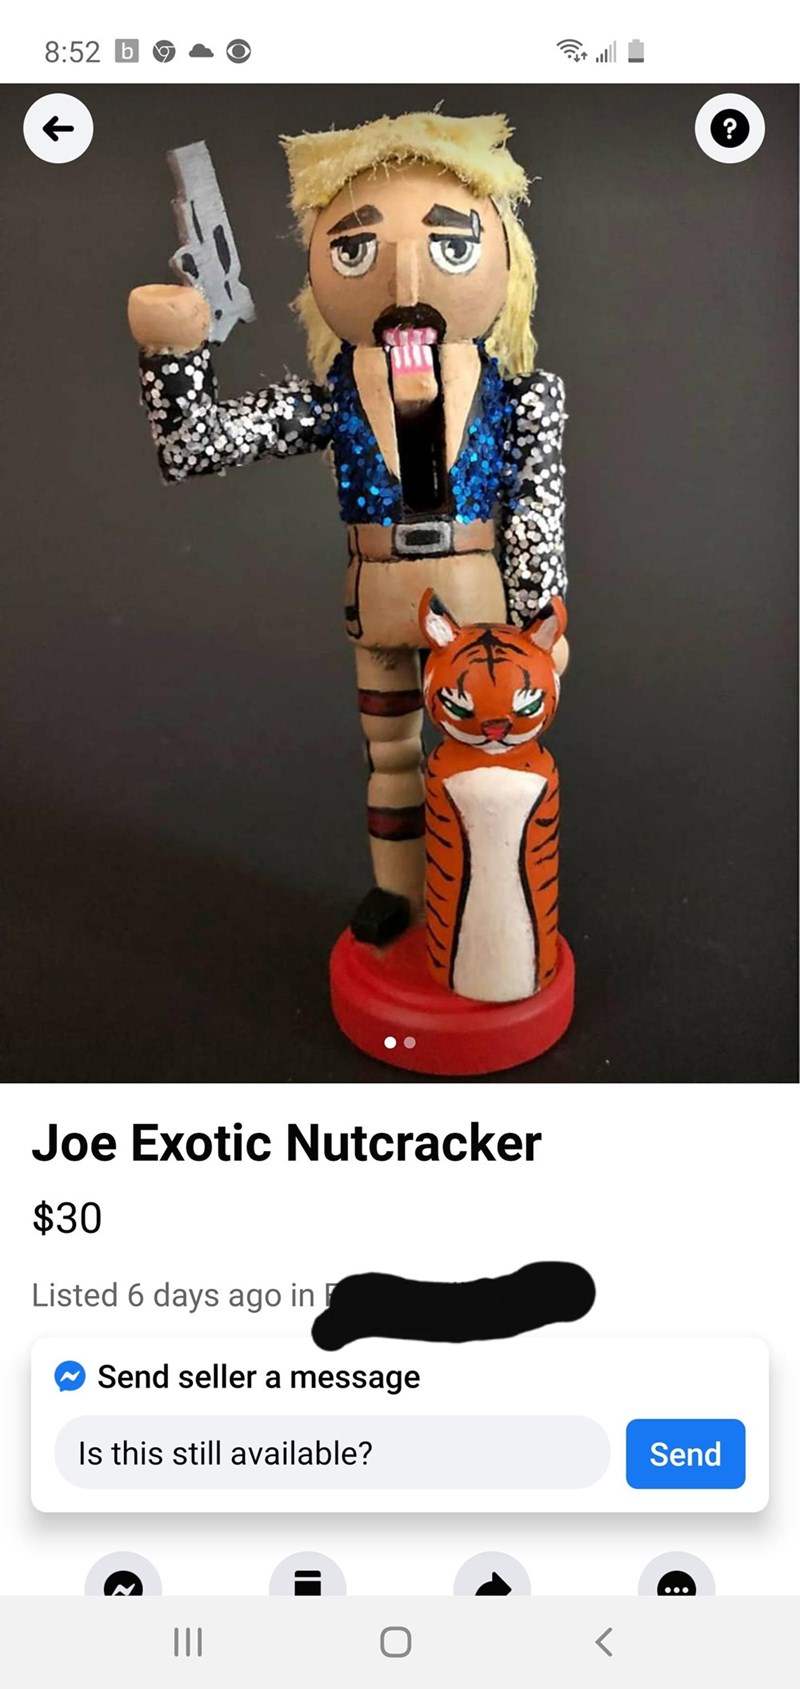 Toy - 8:52 b Joe Exotic Nutcracker $30 Listed 6 days ago in Send seller a message Is this still available? Send II